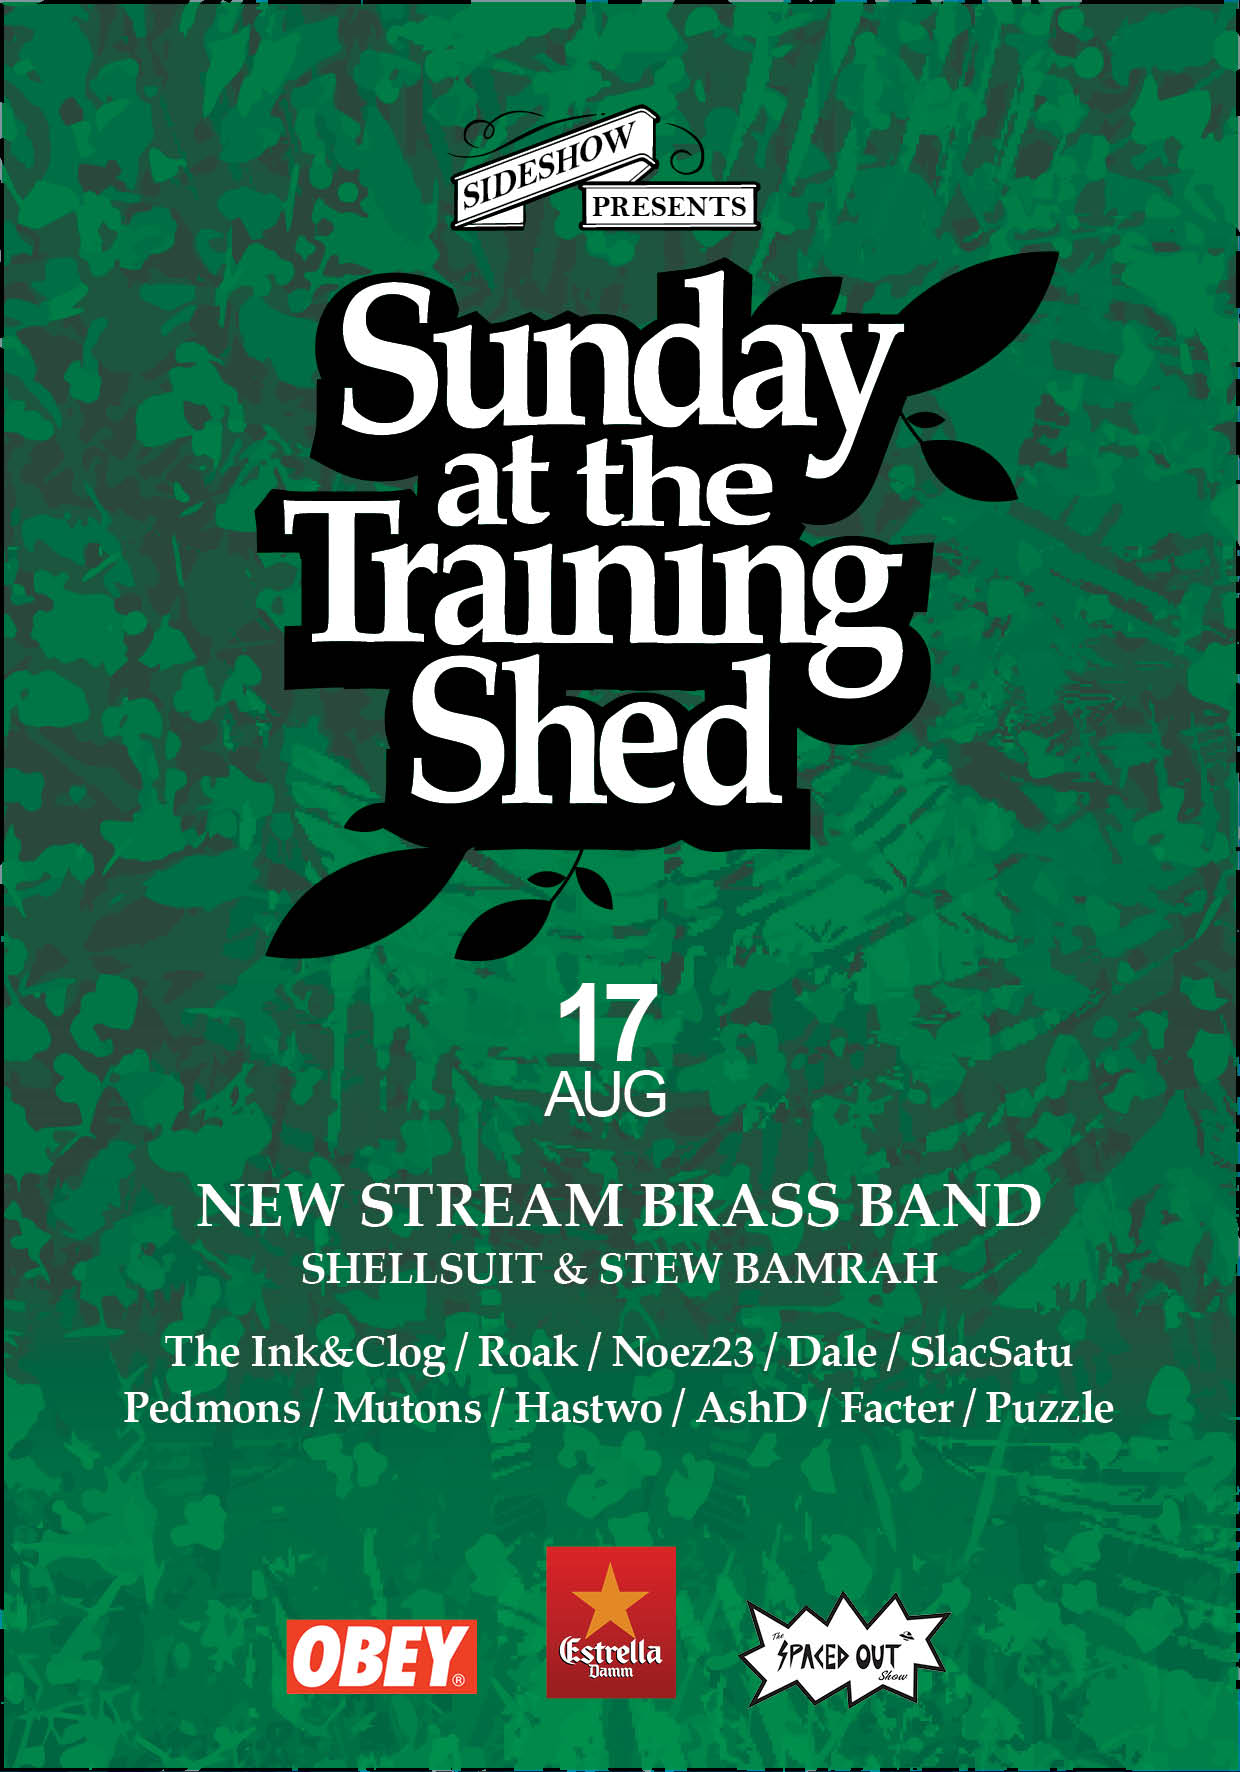 Sunday at the Training Shed 22